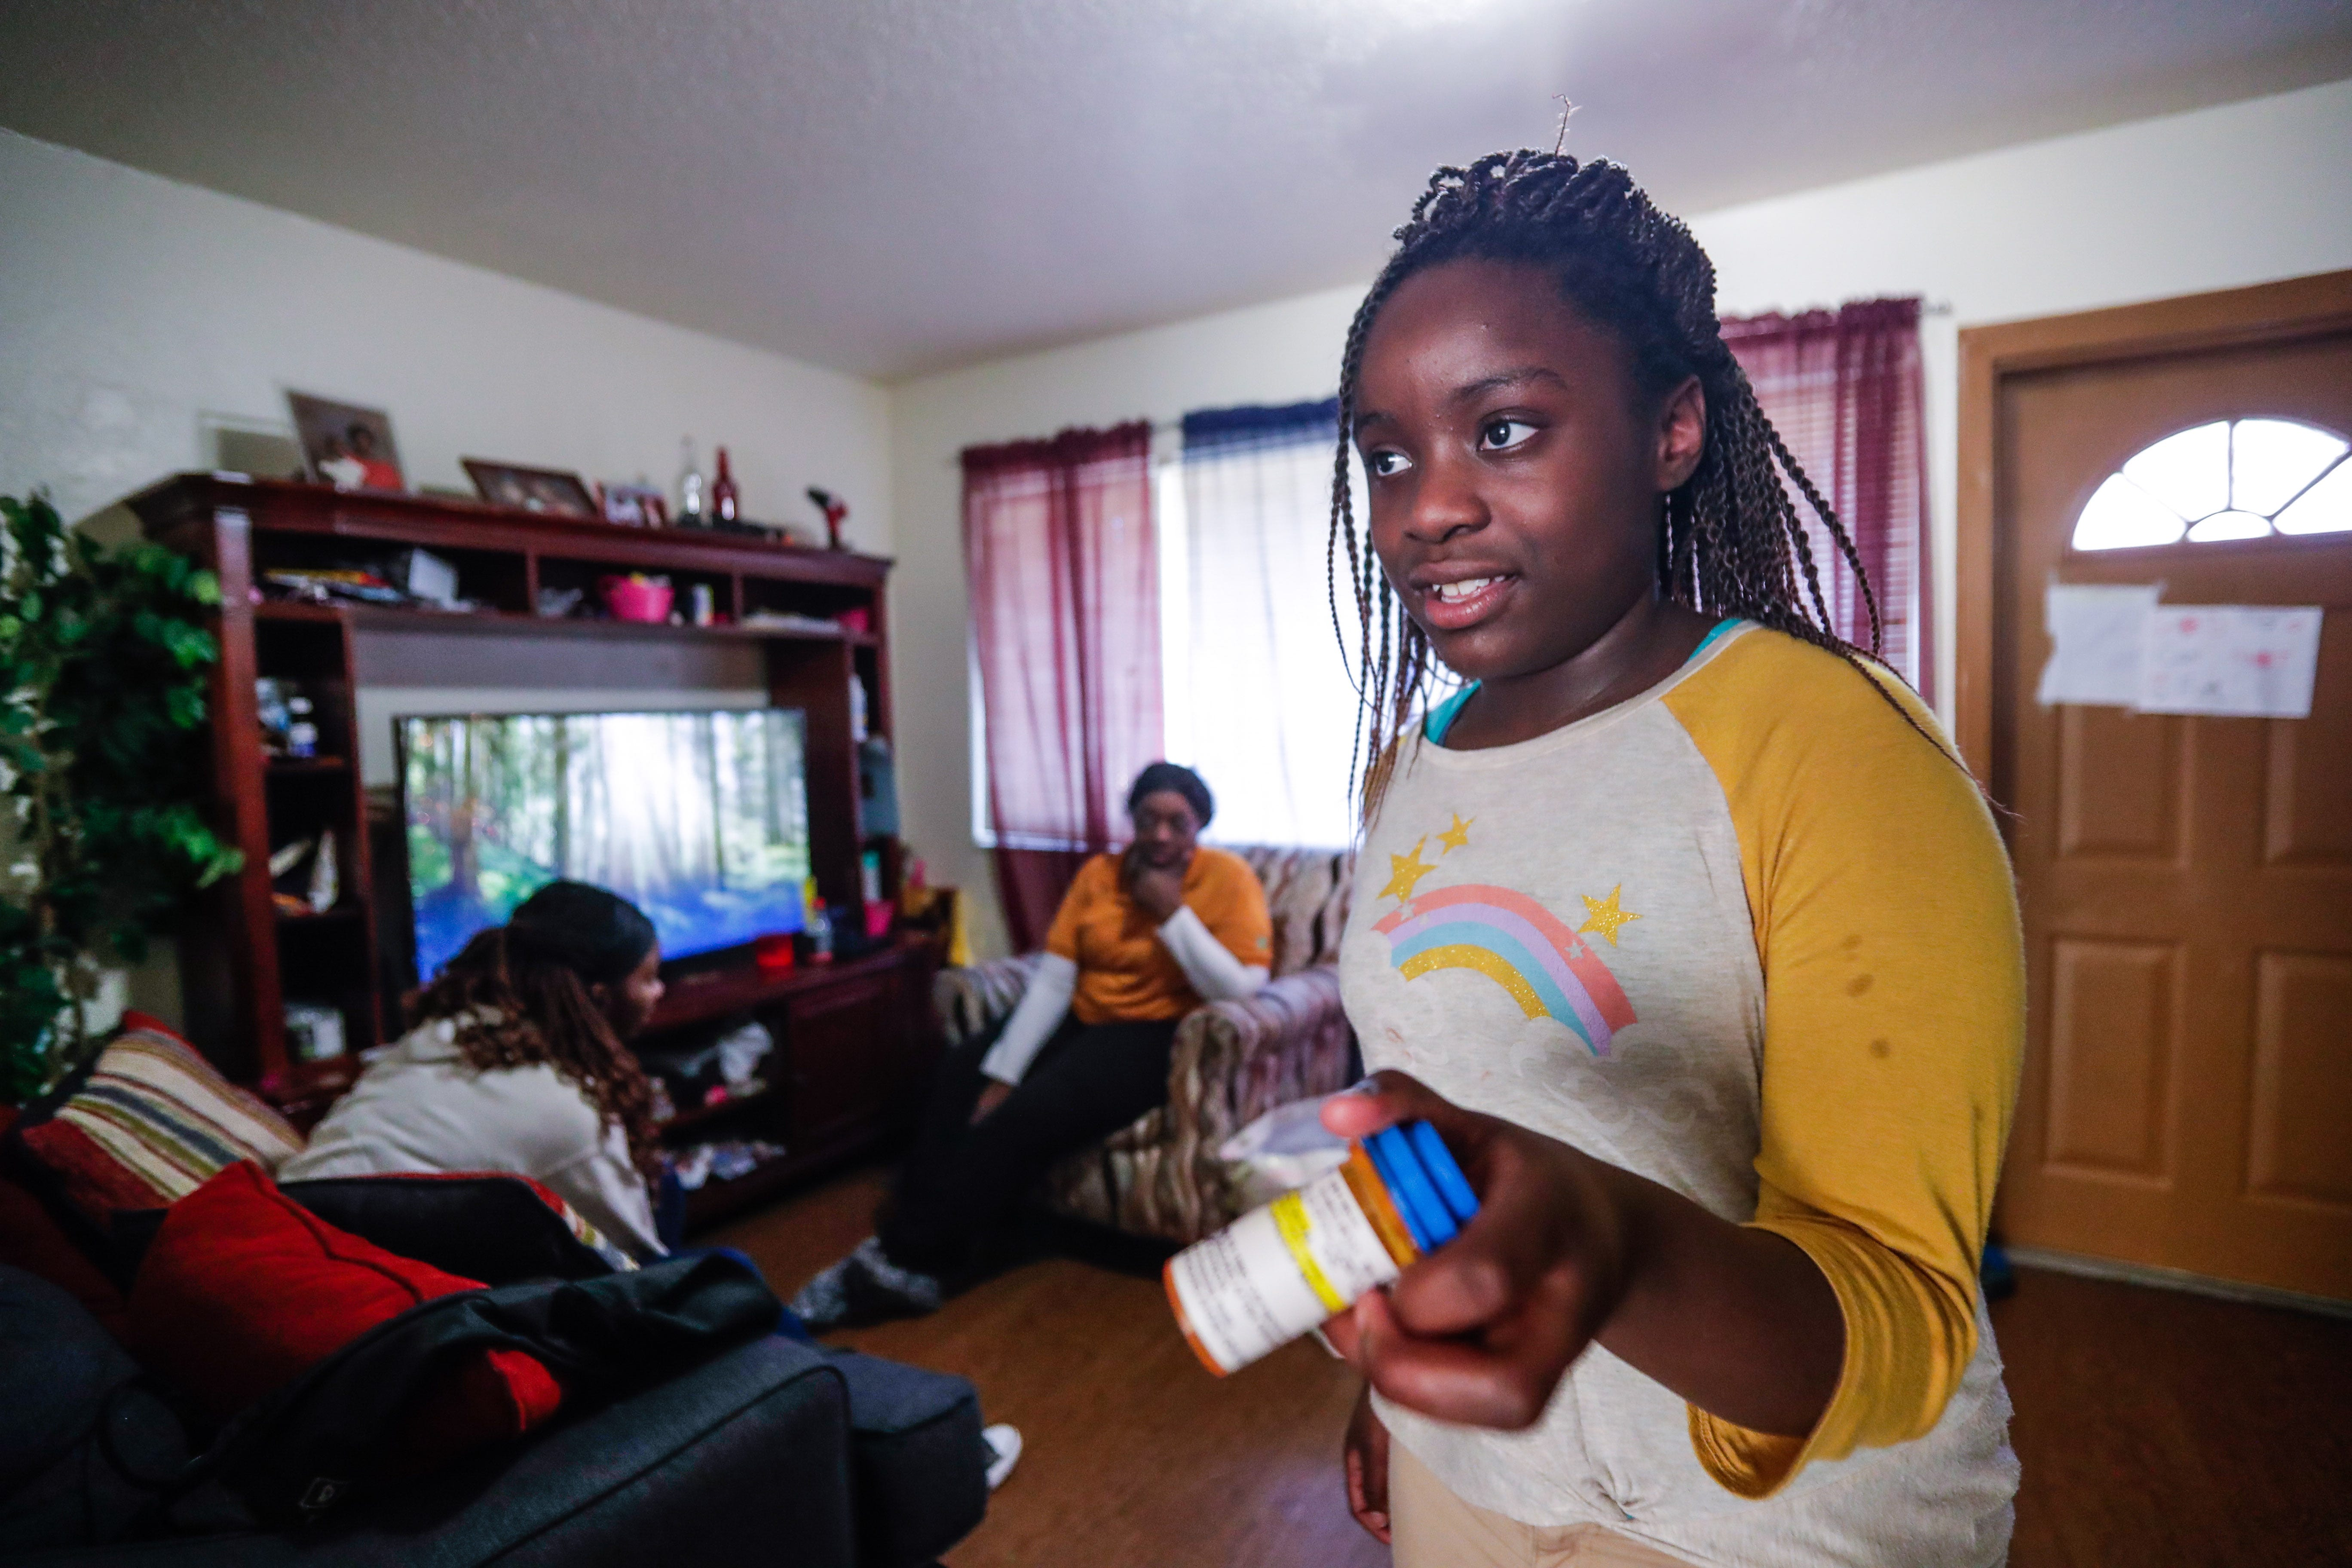 """Deitra """"DeeDee"""" Jackson, 11, shows what her prescription is that helps with her ADD. Both DeeDee and her older sister Lynaya Saylor, 18, have ADD."""